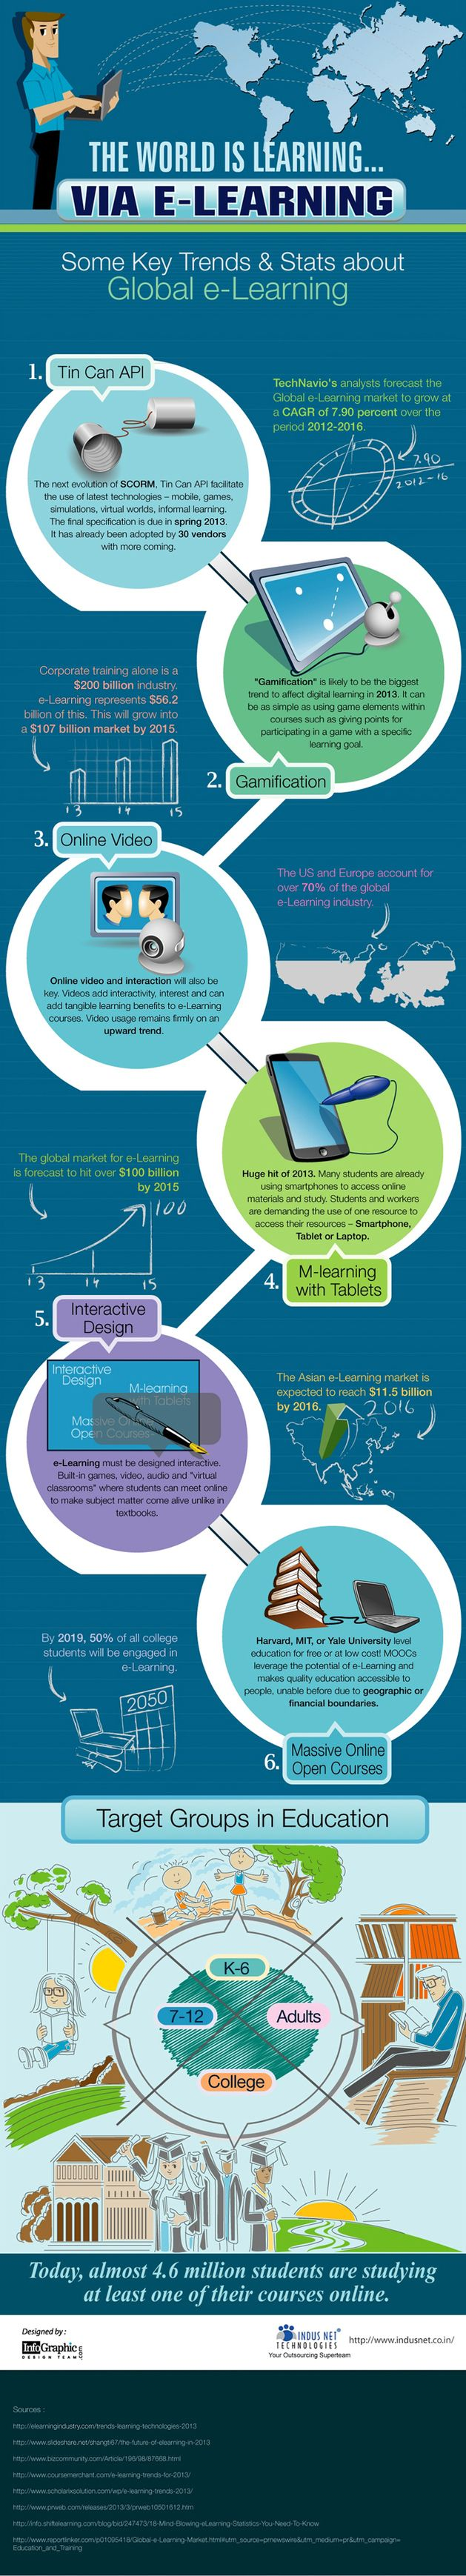 best images about lifelong learning elearning distance global elearning trends